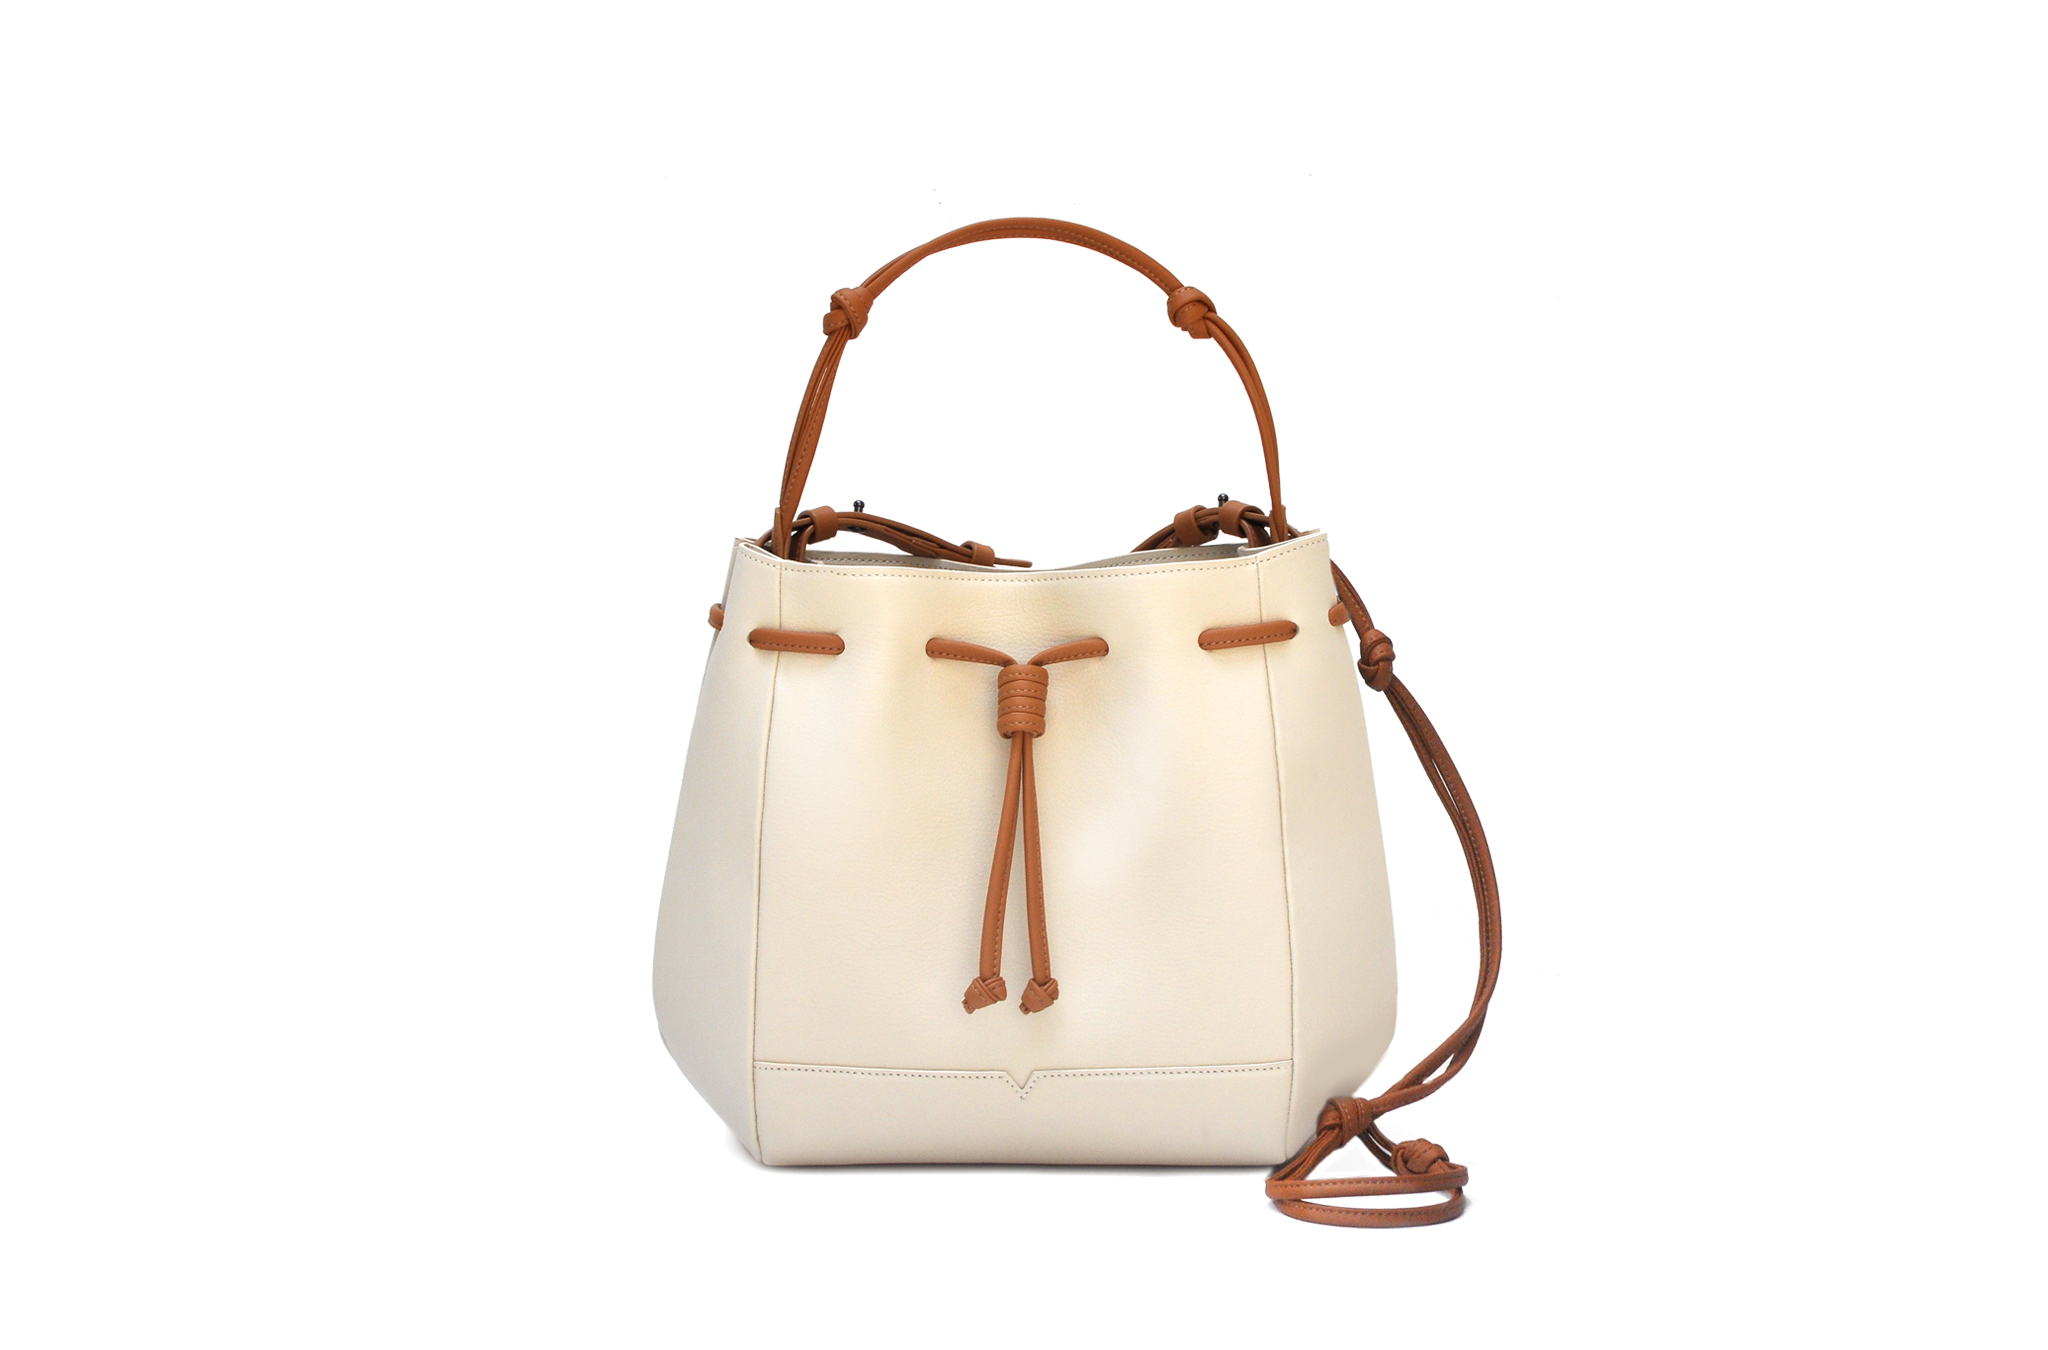 https://vonholzhausen.com/collections/the-buckets/products/the-mini-bucket-crossbody-oat-caramel